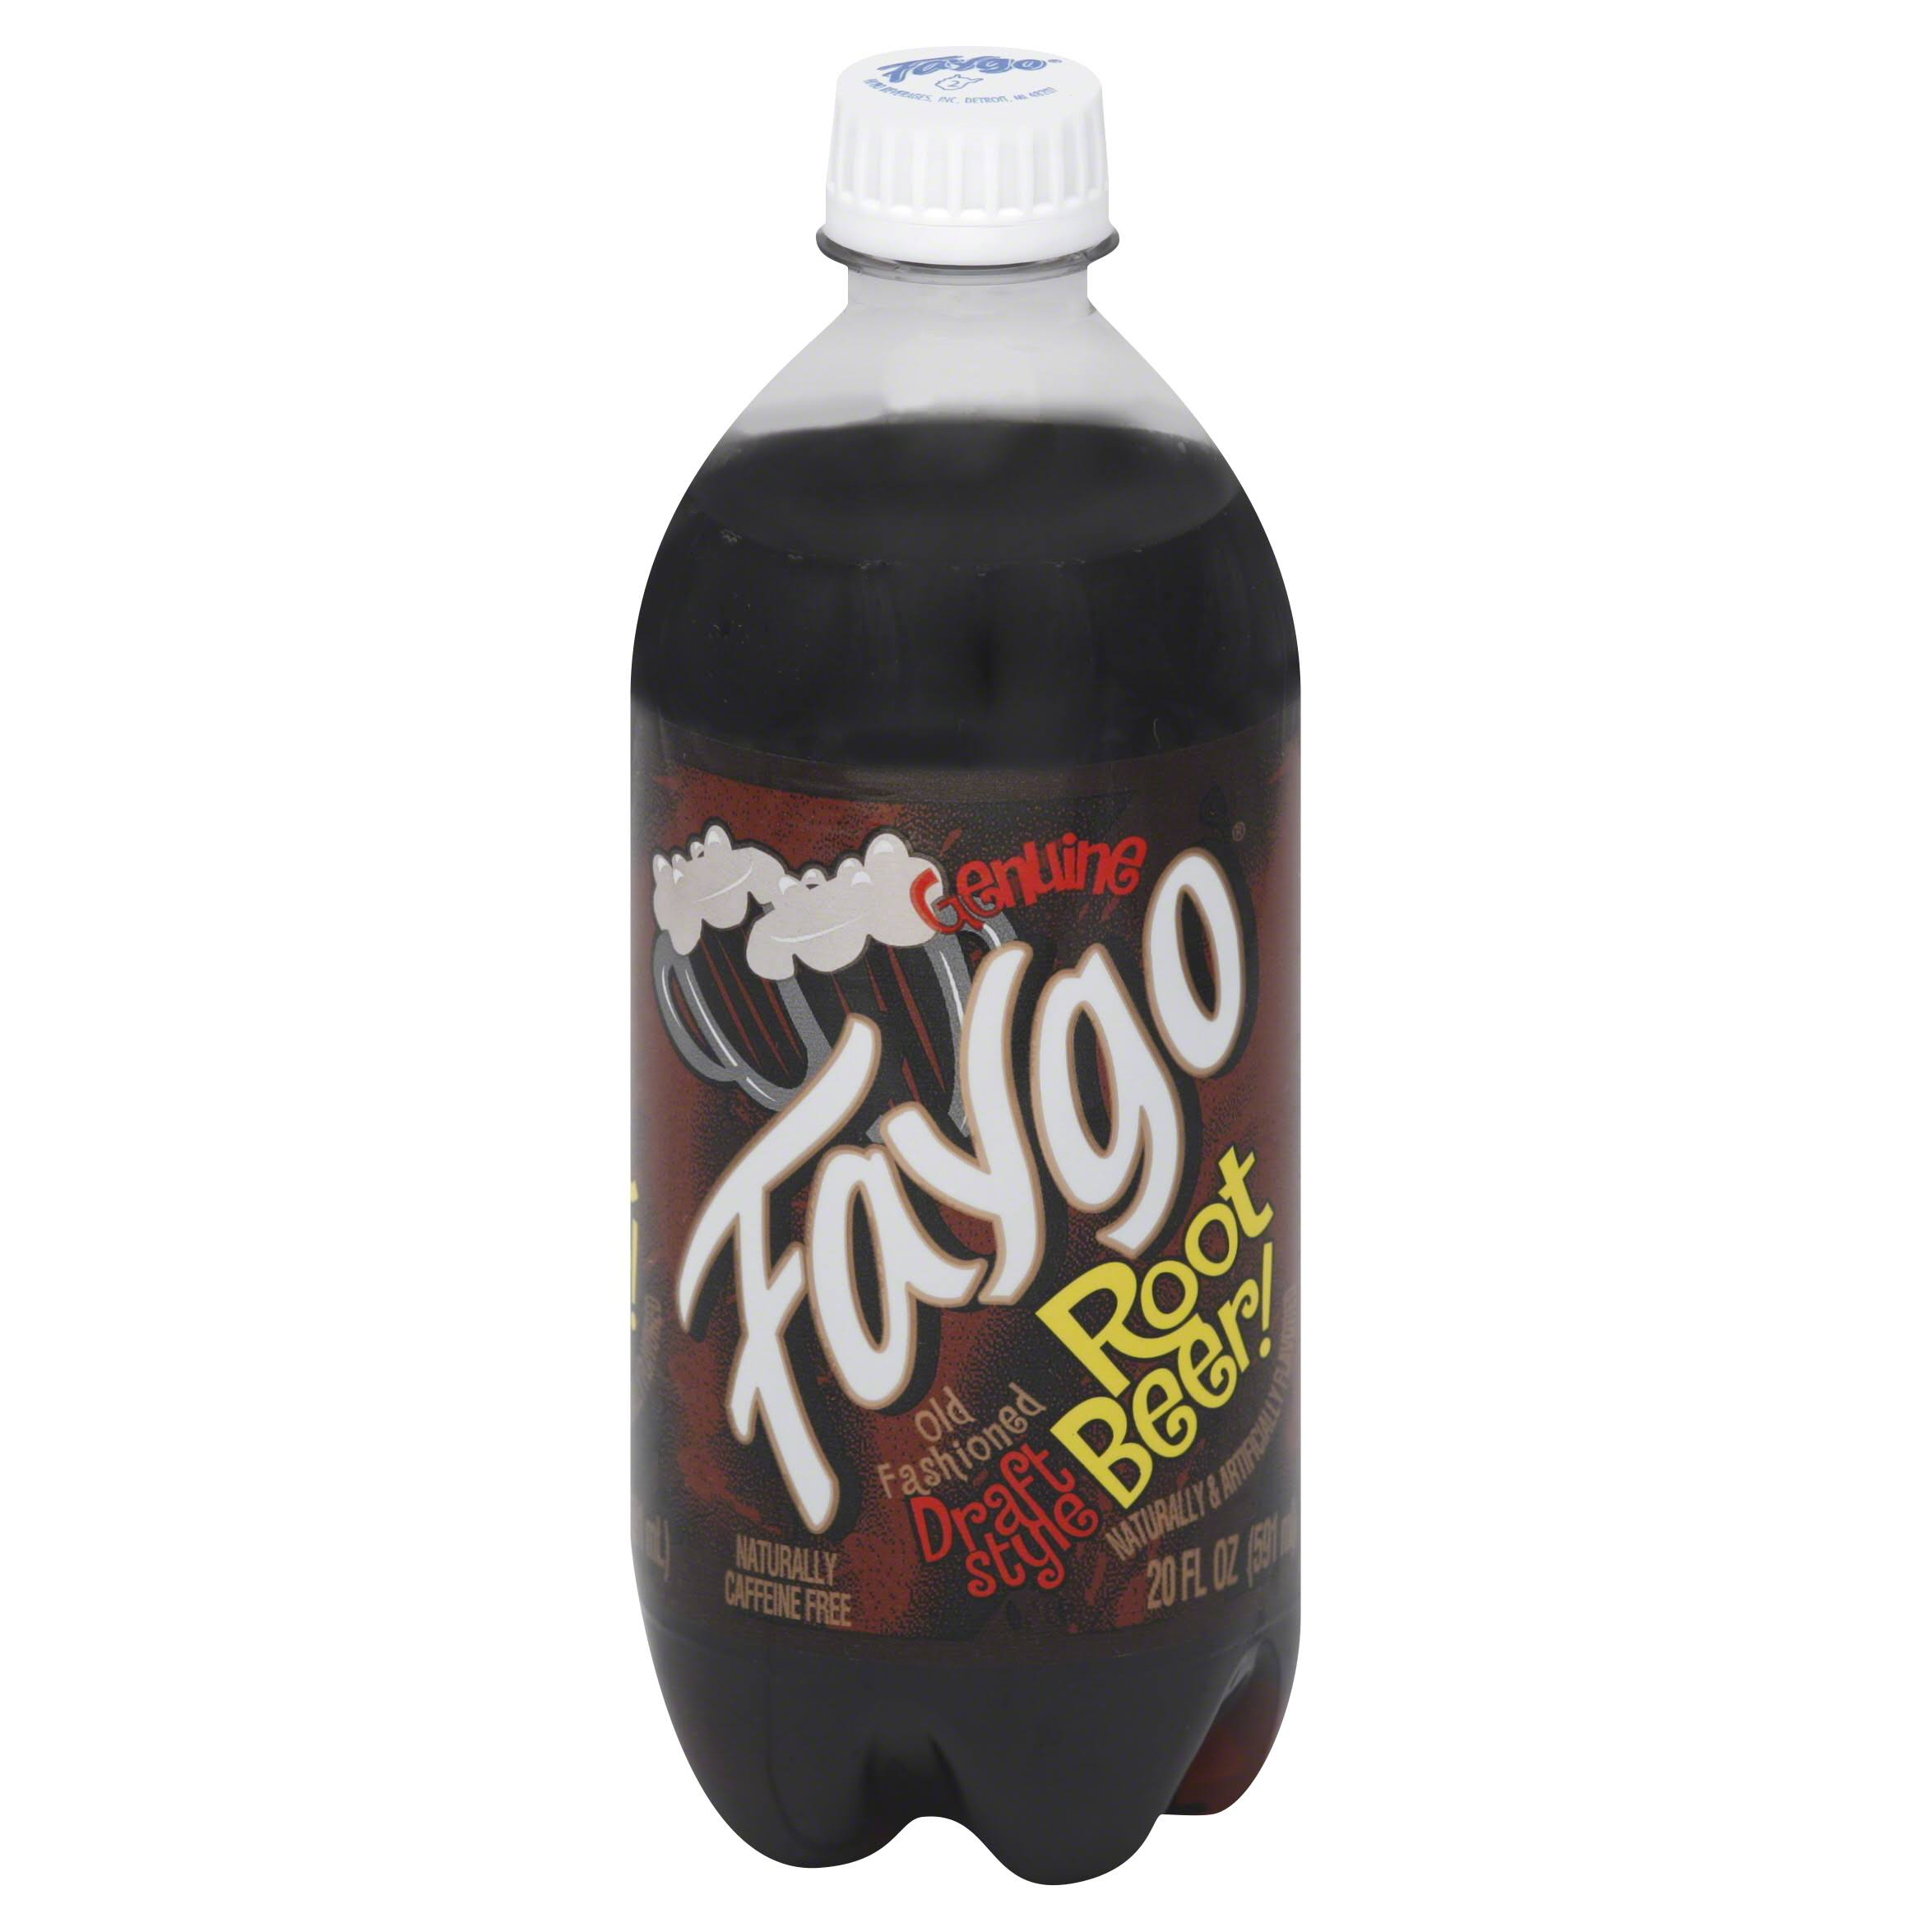 Faygo Draft Style Root Beer - 20oz